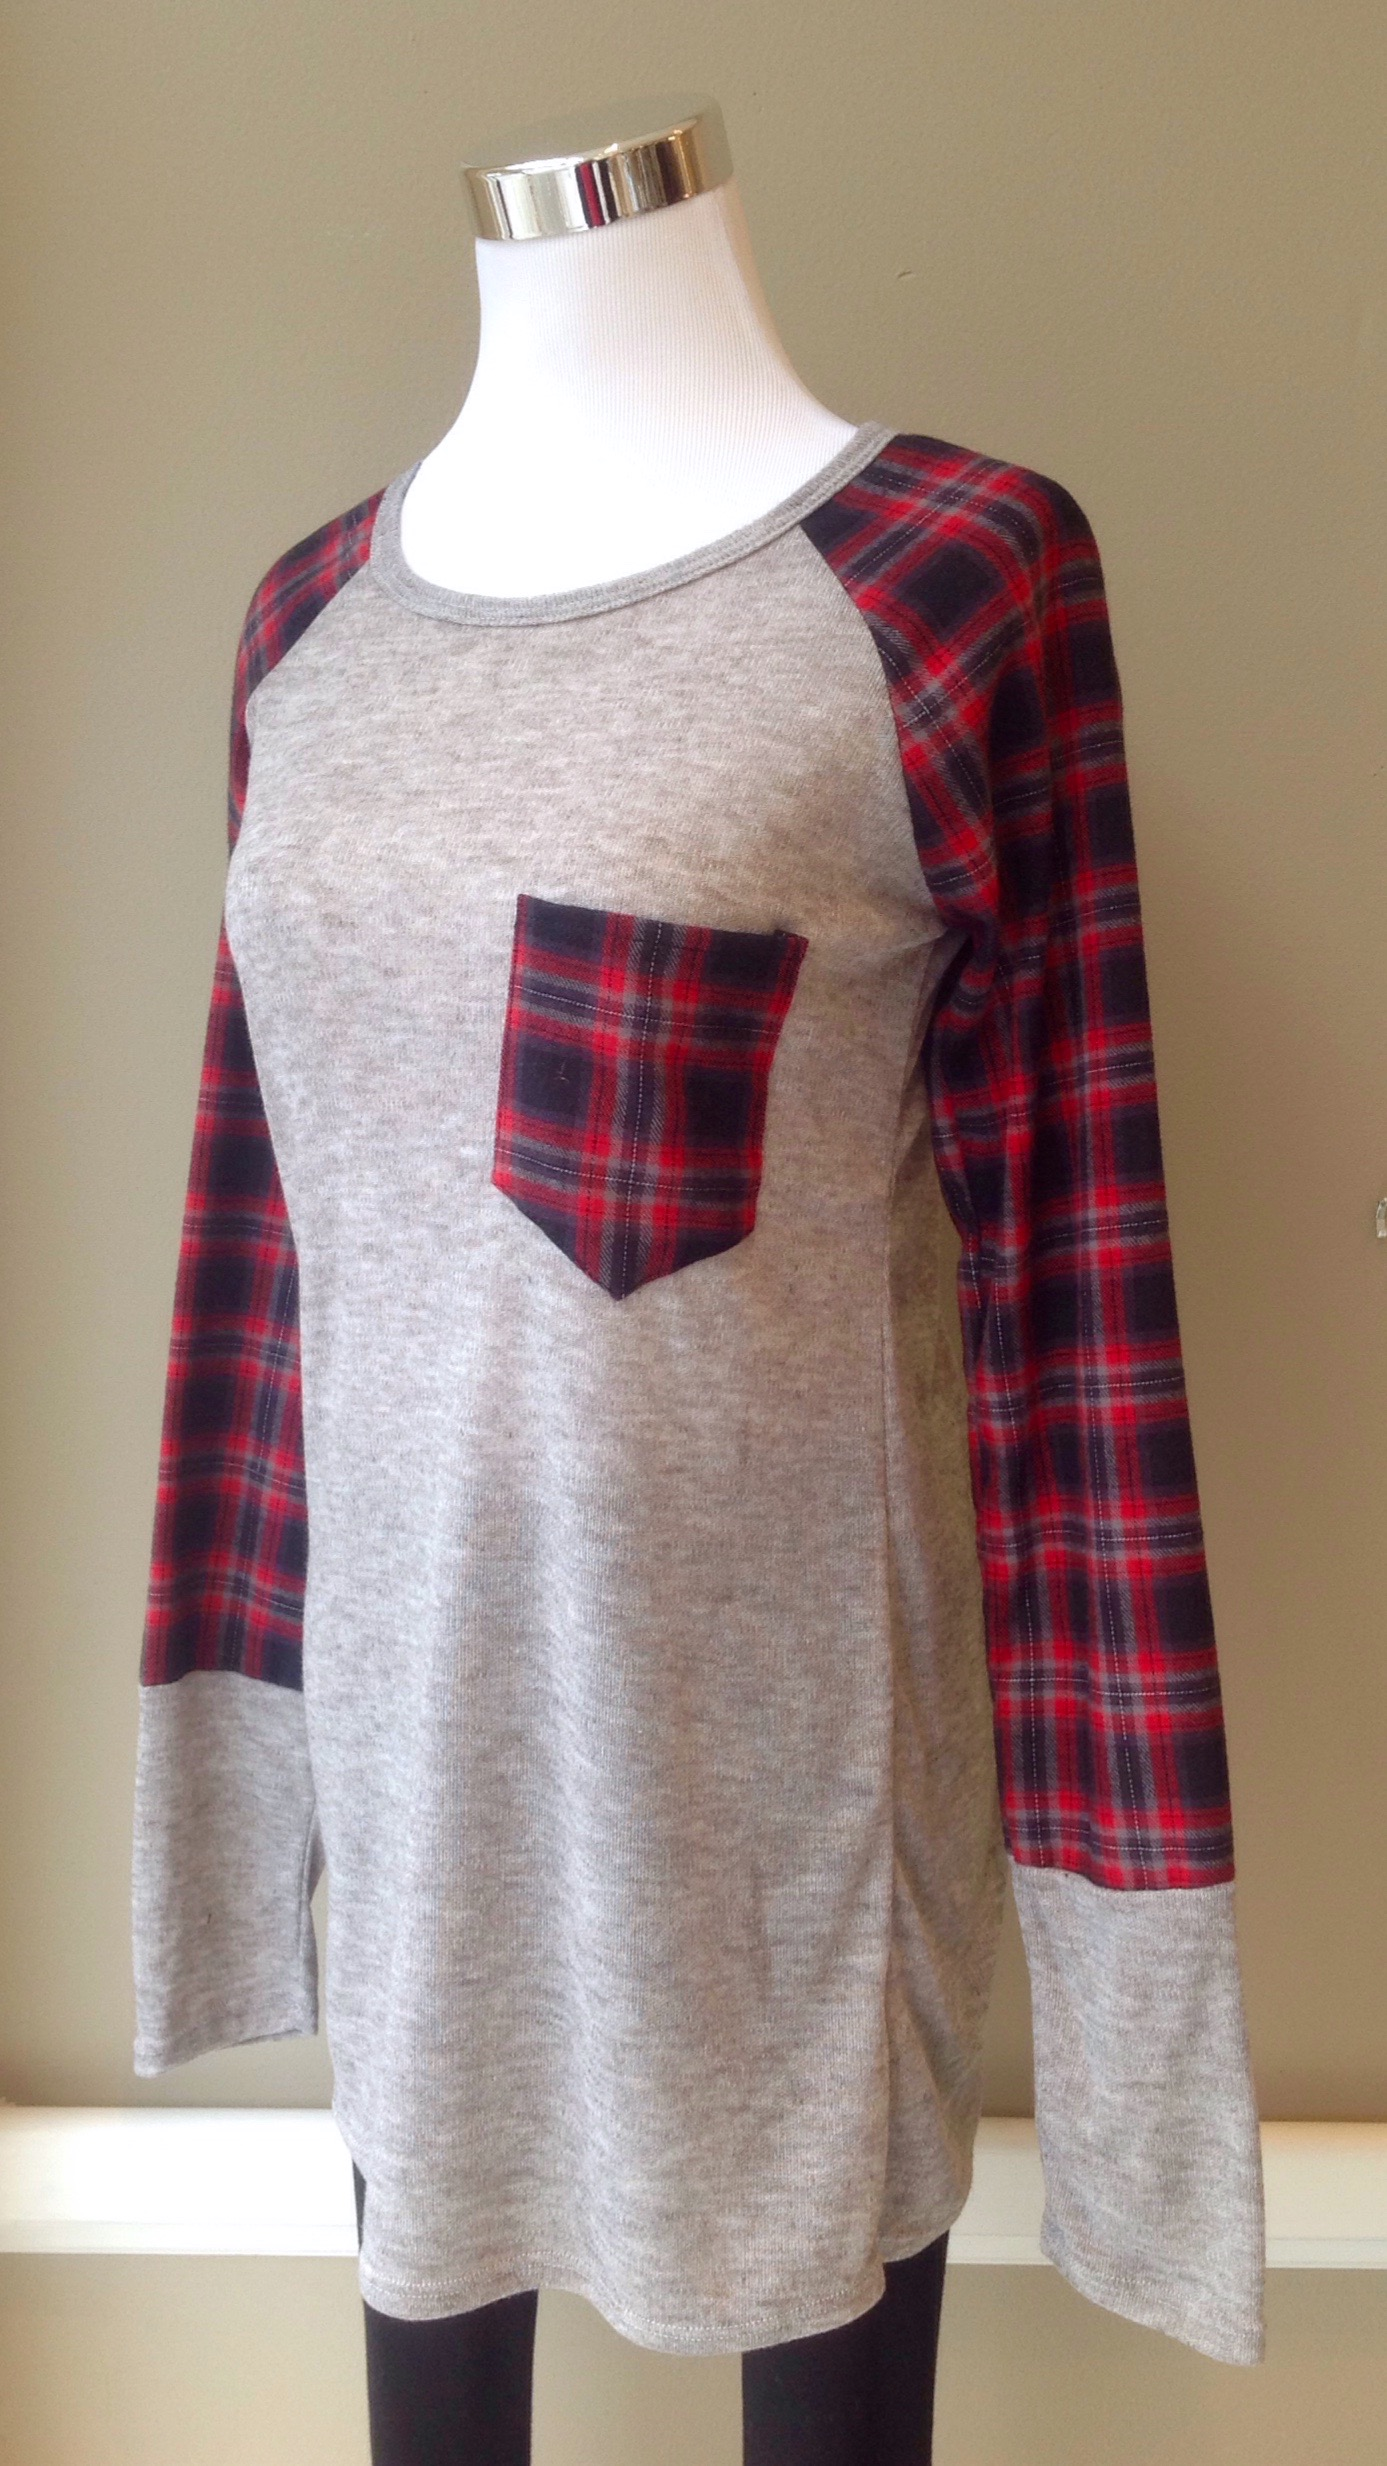 Plaid and heather grey knit baseball top, $32